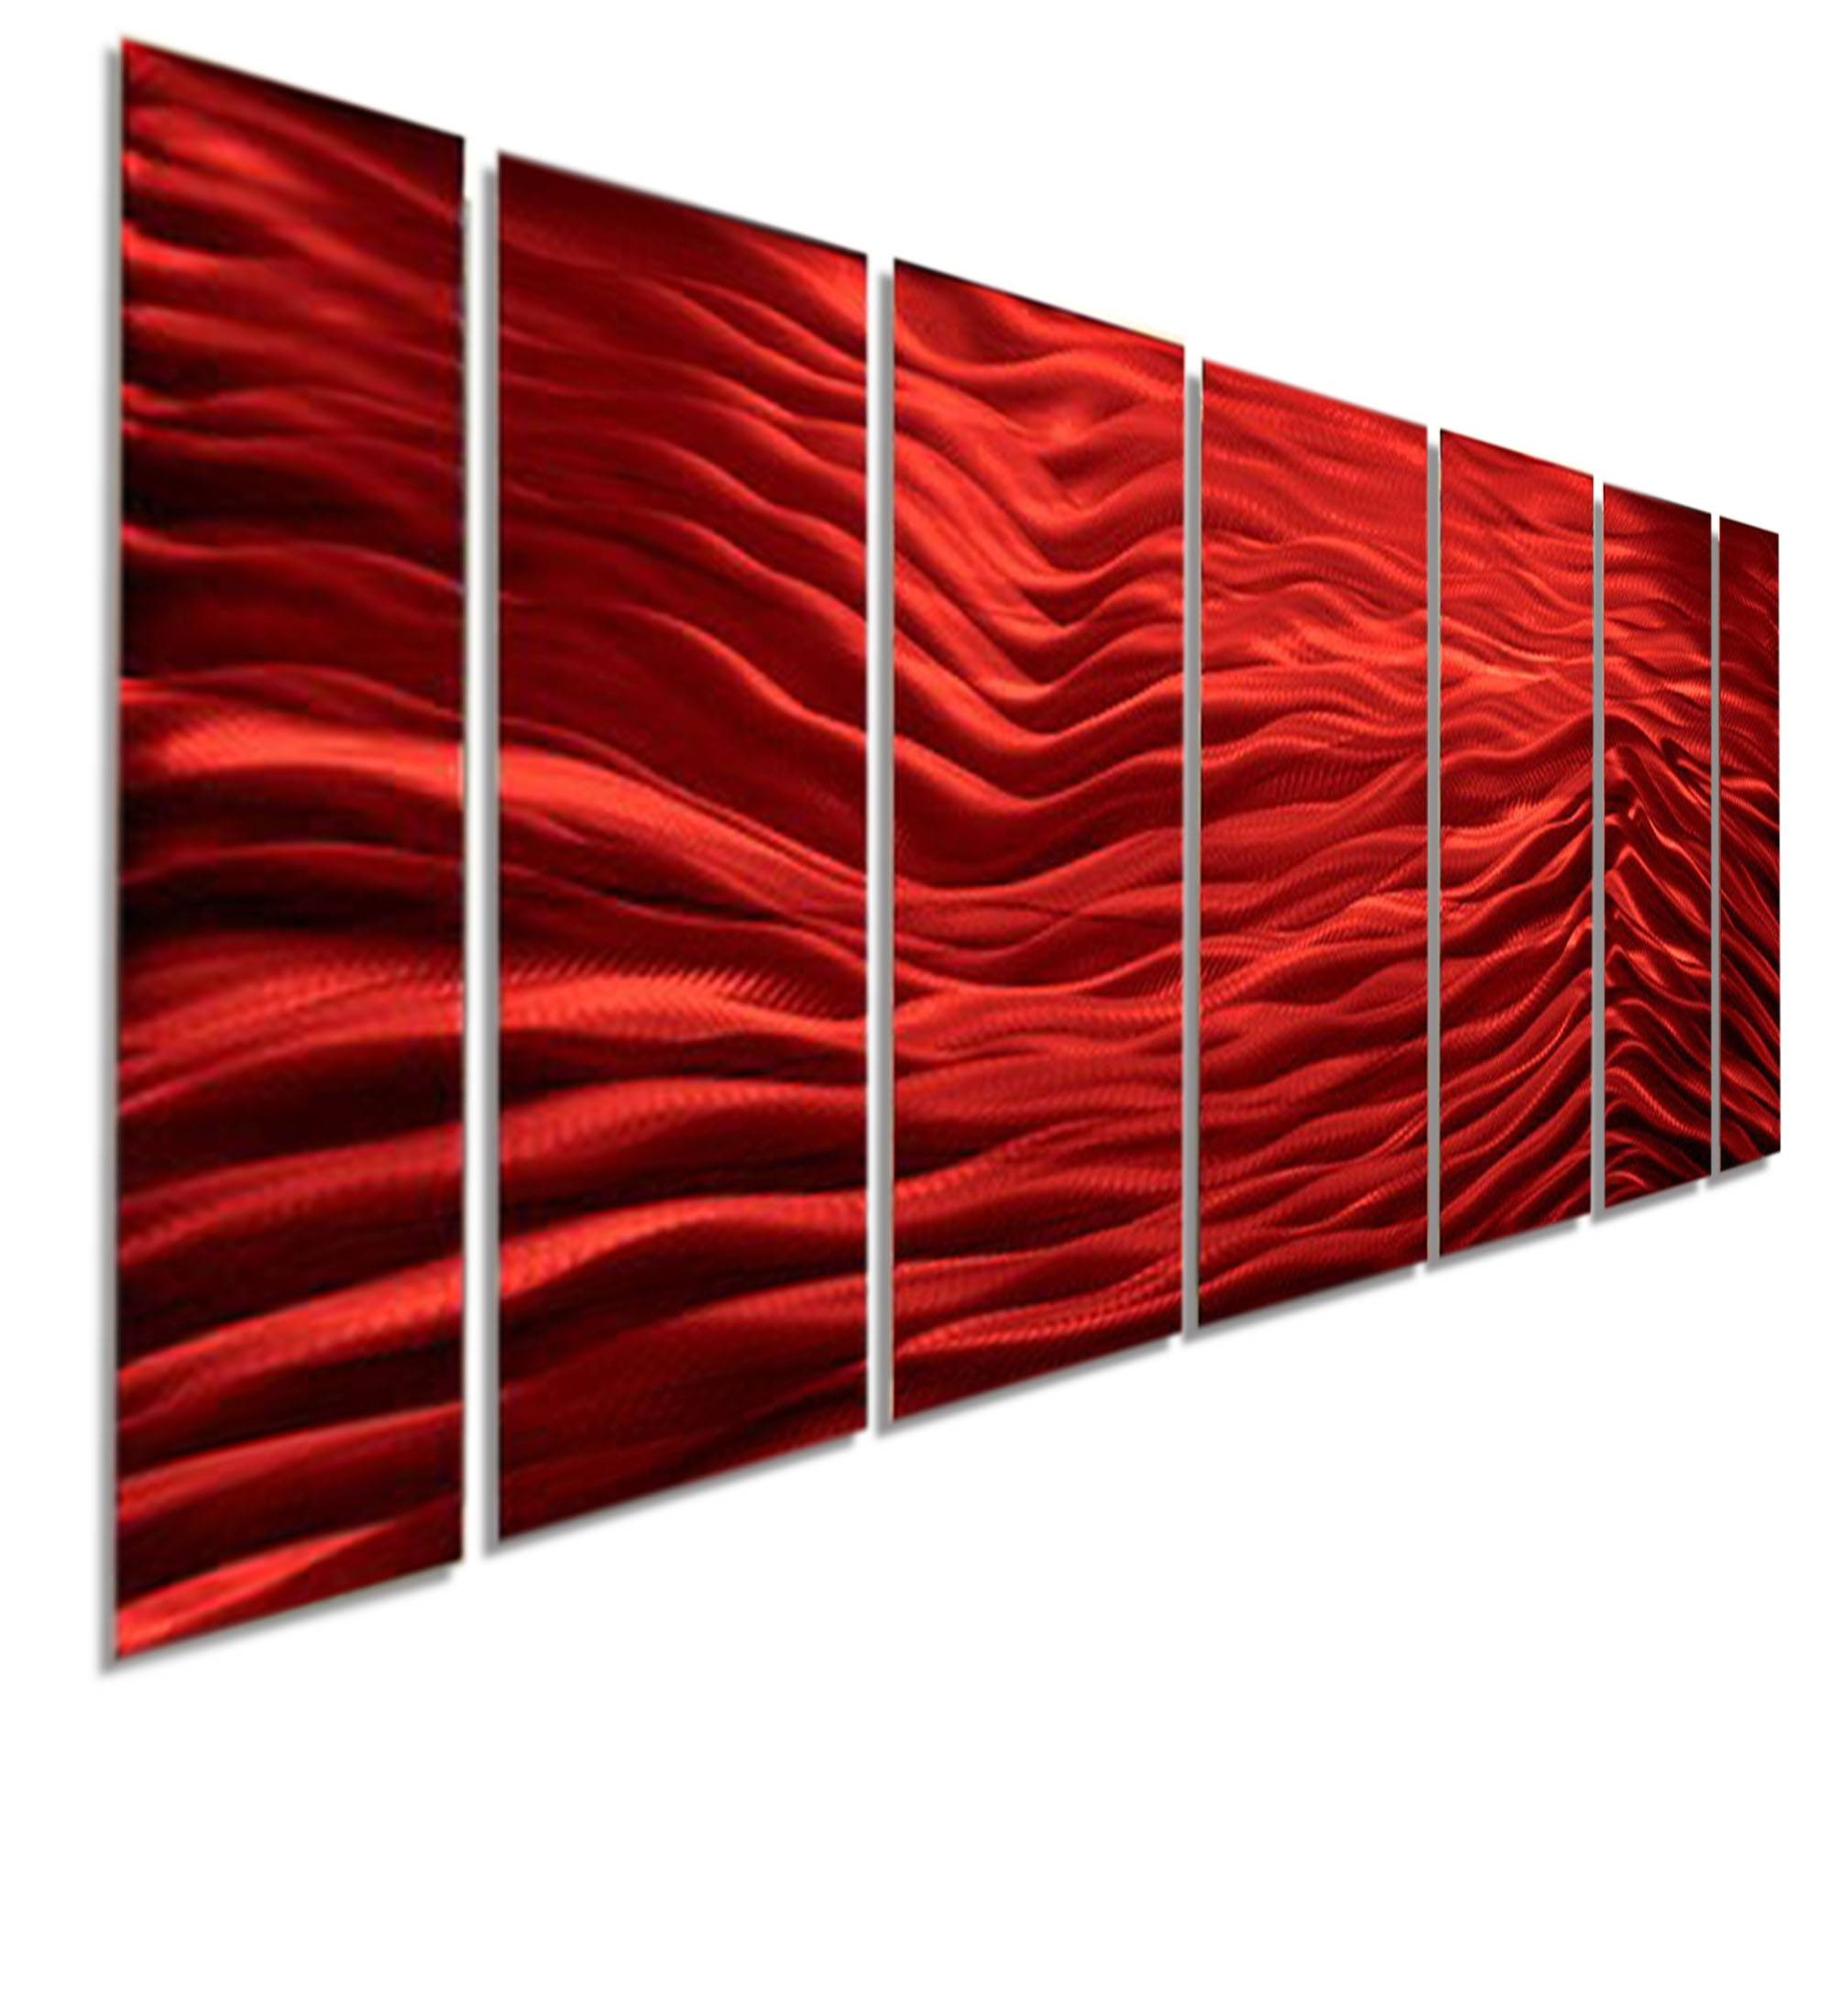 Red Wave Ii Contemporary Metal Wall Sculptureartist Jon Allen Within Most Popular Large Abstract Metal Wall Art (View 10 of 20)